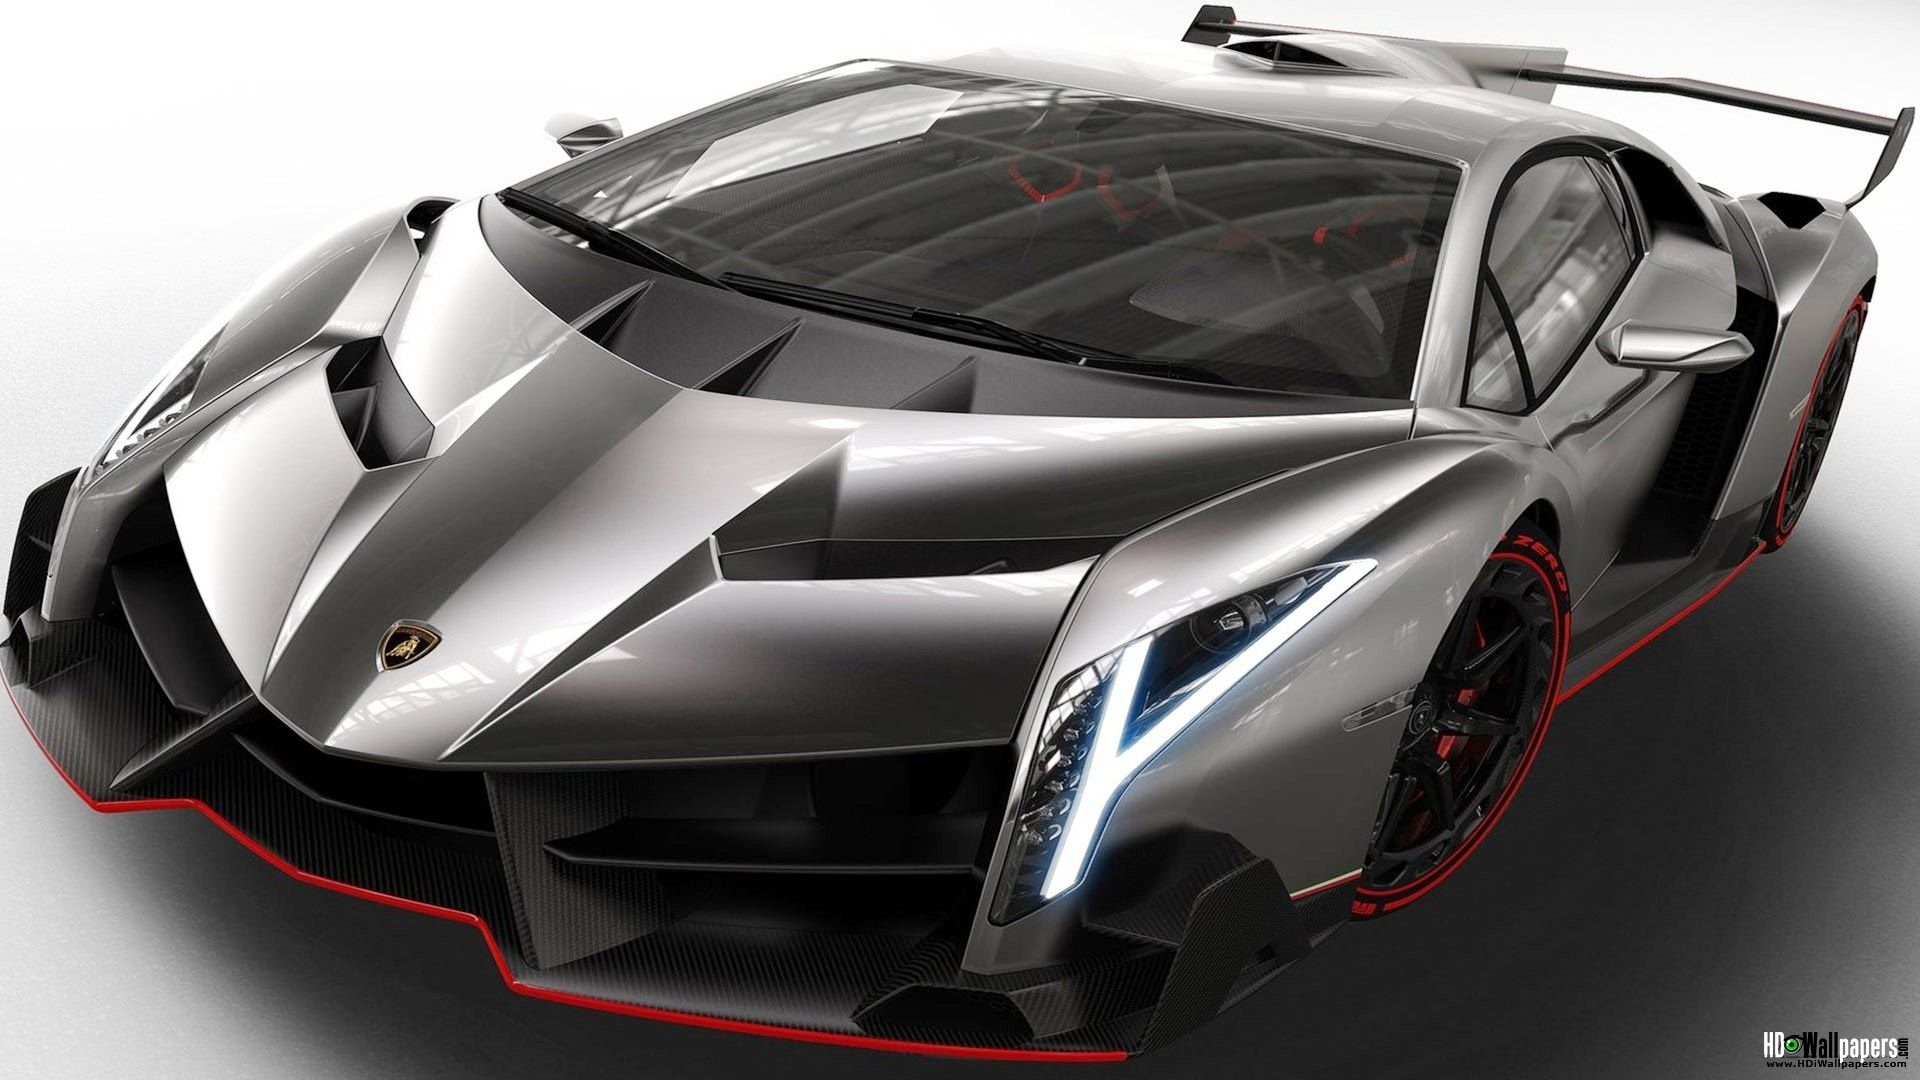 Fastest cars in the world top 10 list 20142015, While